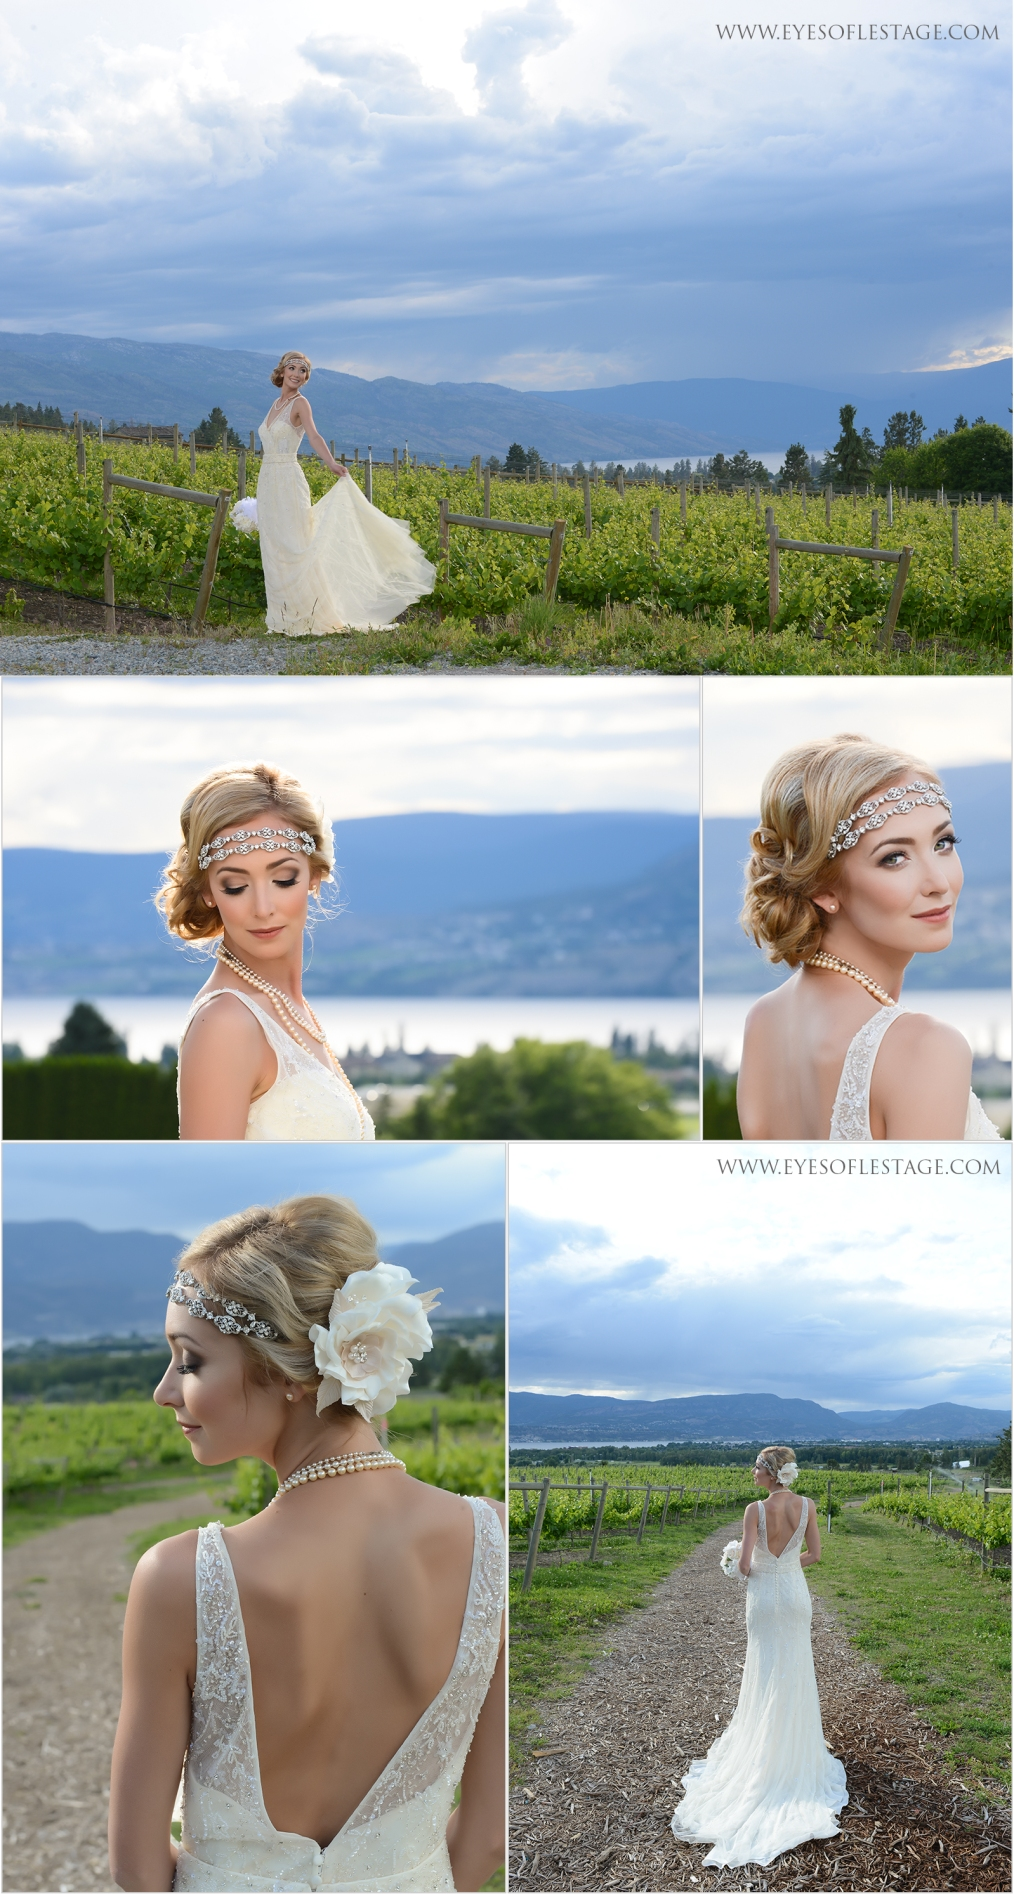 Model Shelby Duncalfe's hair by Amy of Tie The Knot Hair Design, Makeup by Bri Stein Artistry